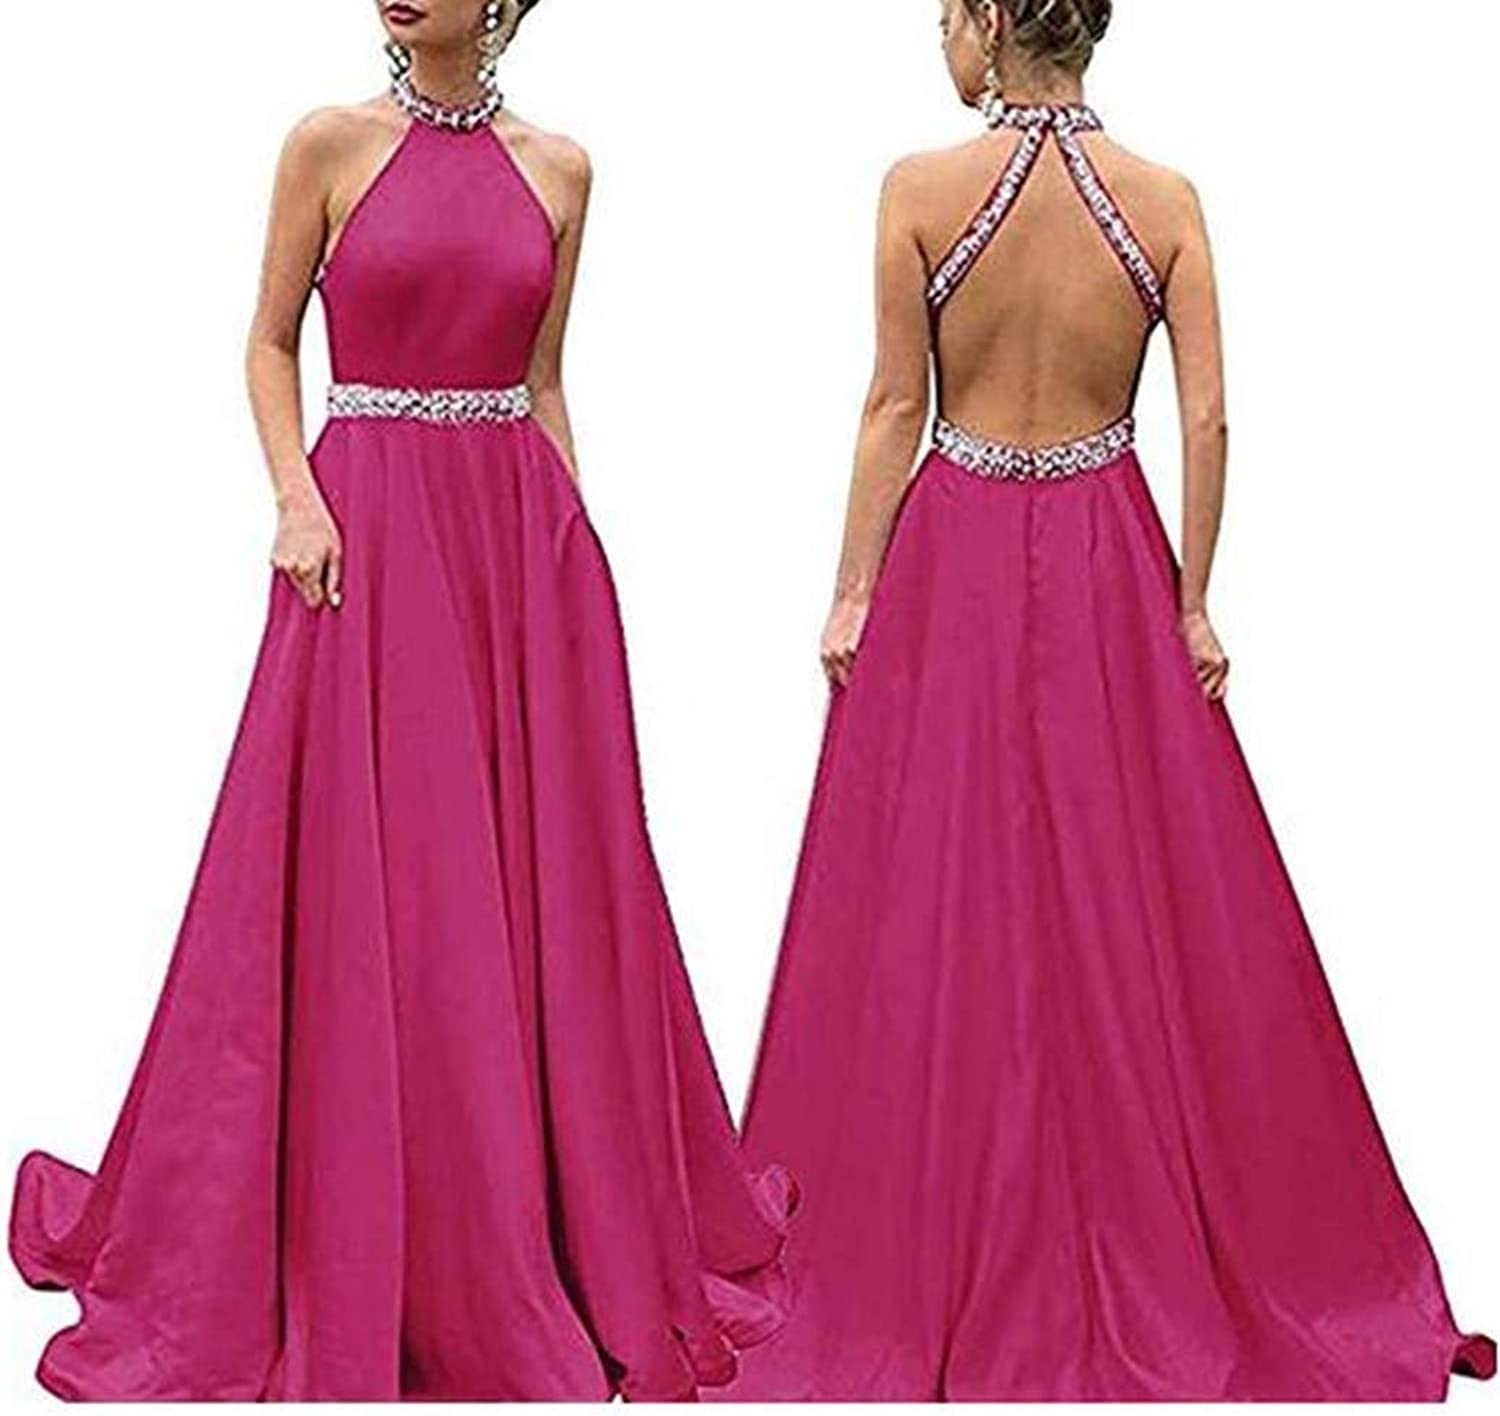 Aline Halter Beaded Satin Backless Evening Dresses with Pockets